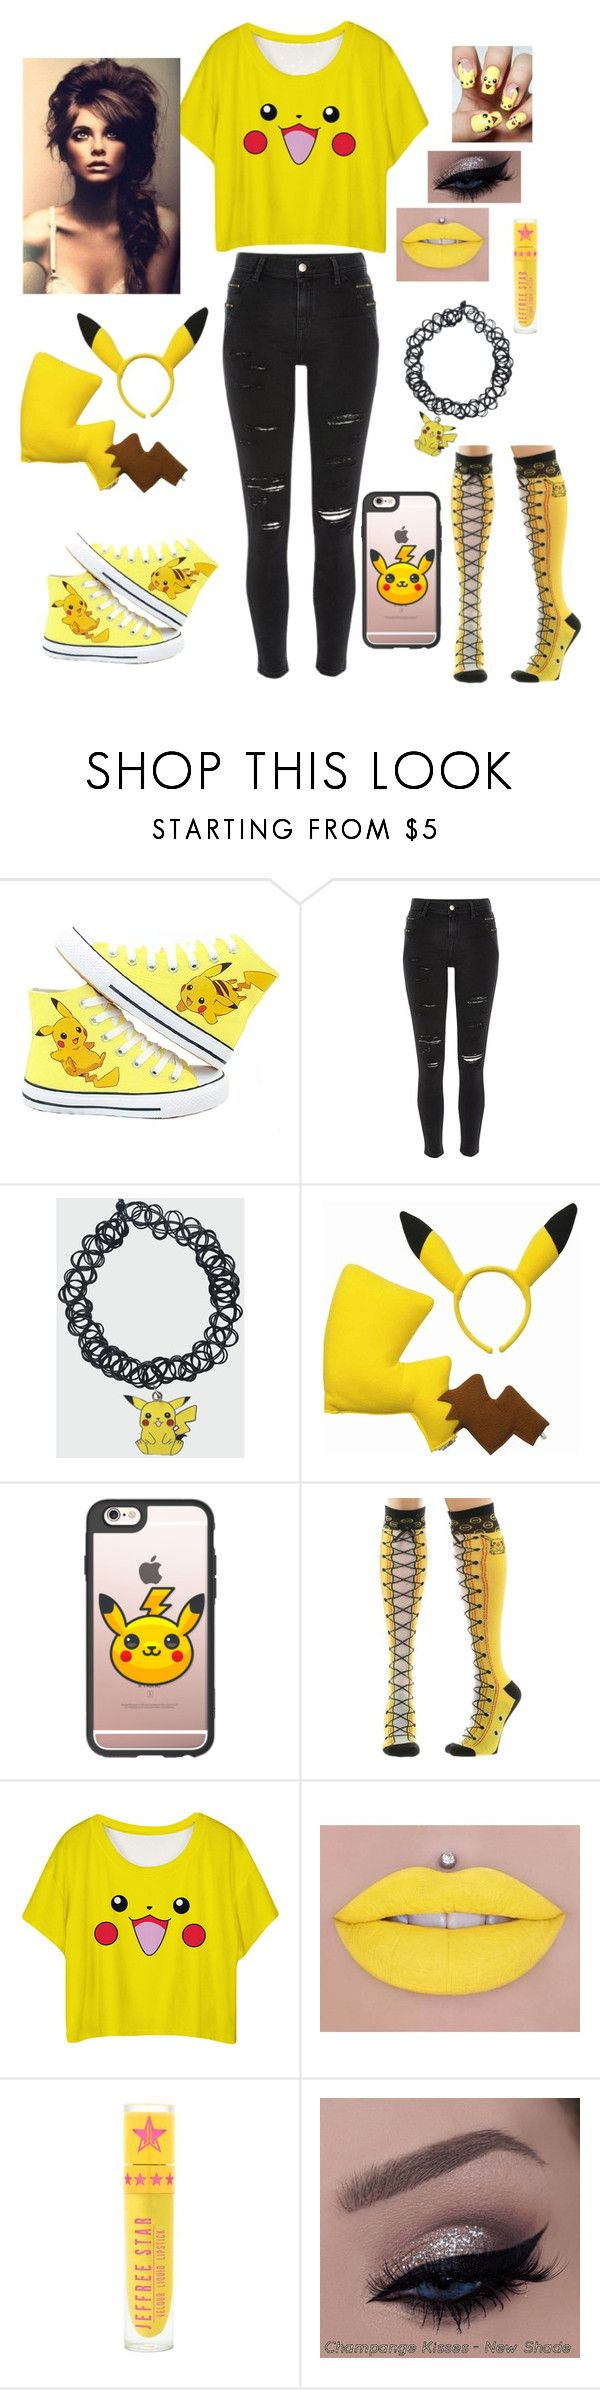 """""""Everything Pikachu!"""" by emo-roxanne ❤ liked on Polyvore featuring River Island and Casetify"""